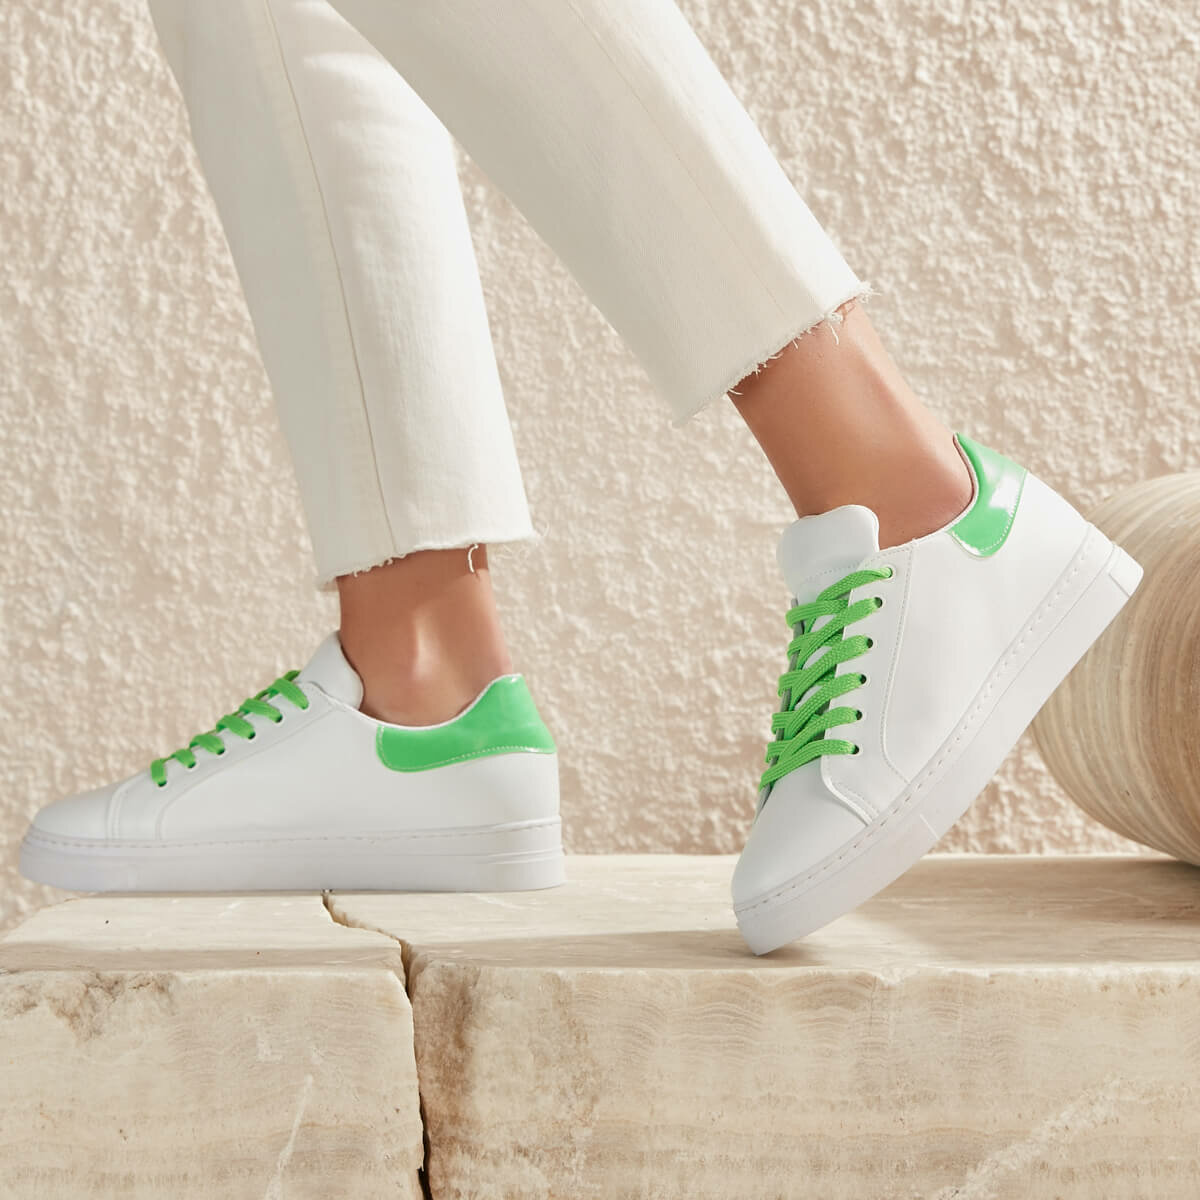 FLO MILEN03Y SKIN Neon Green Women 'S Sneaker Shoes BUTIGO